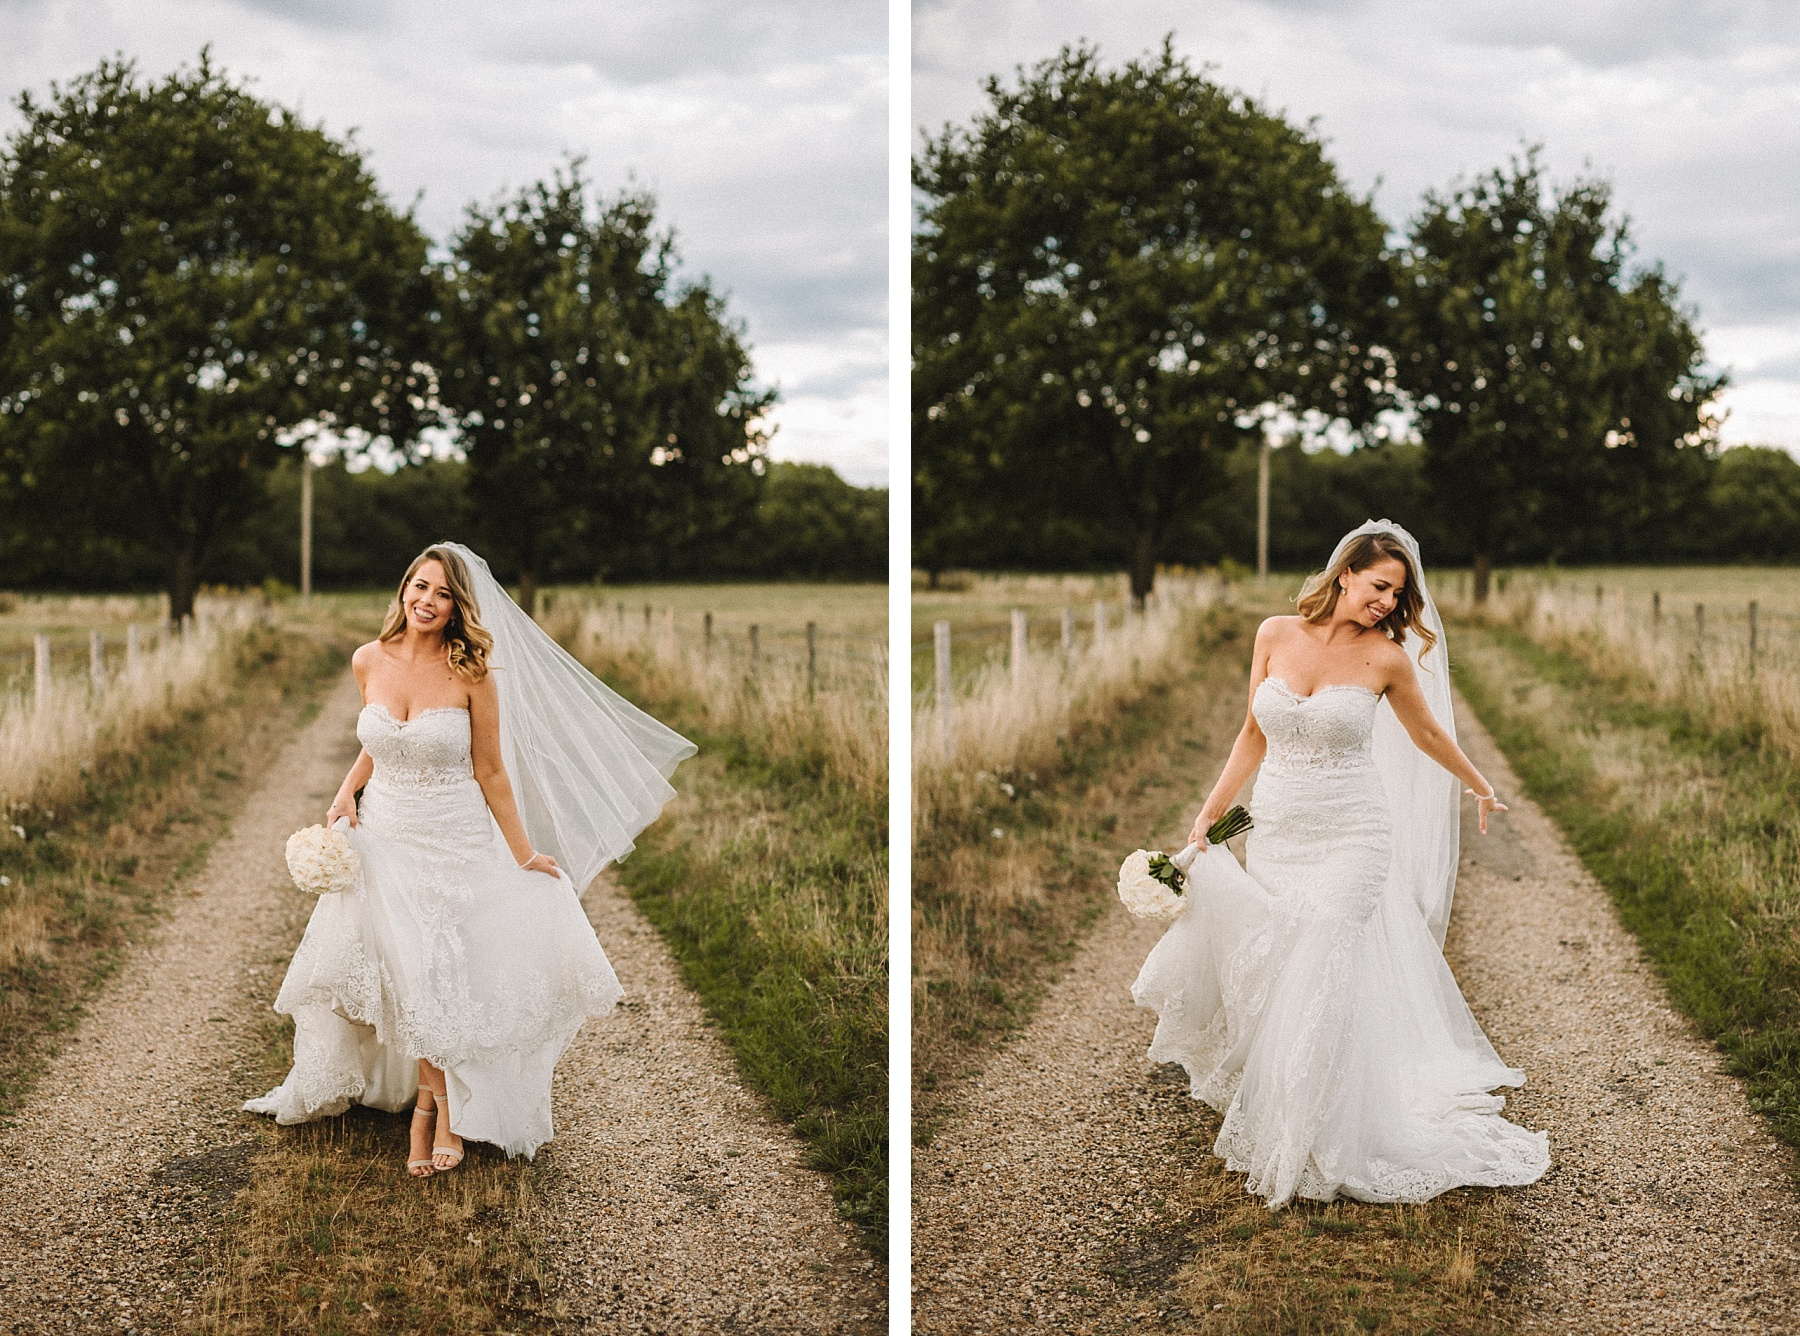 photograph of cool bride in white wedding dress